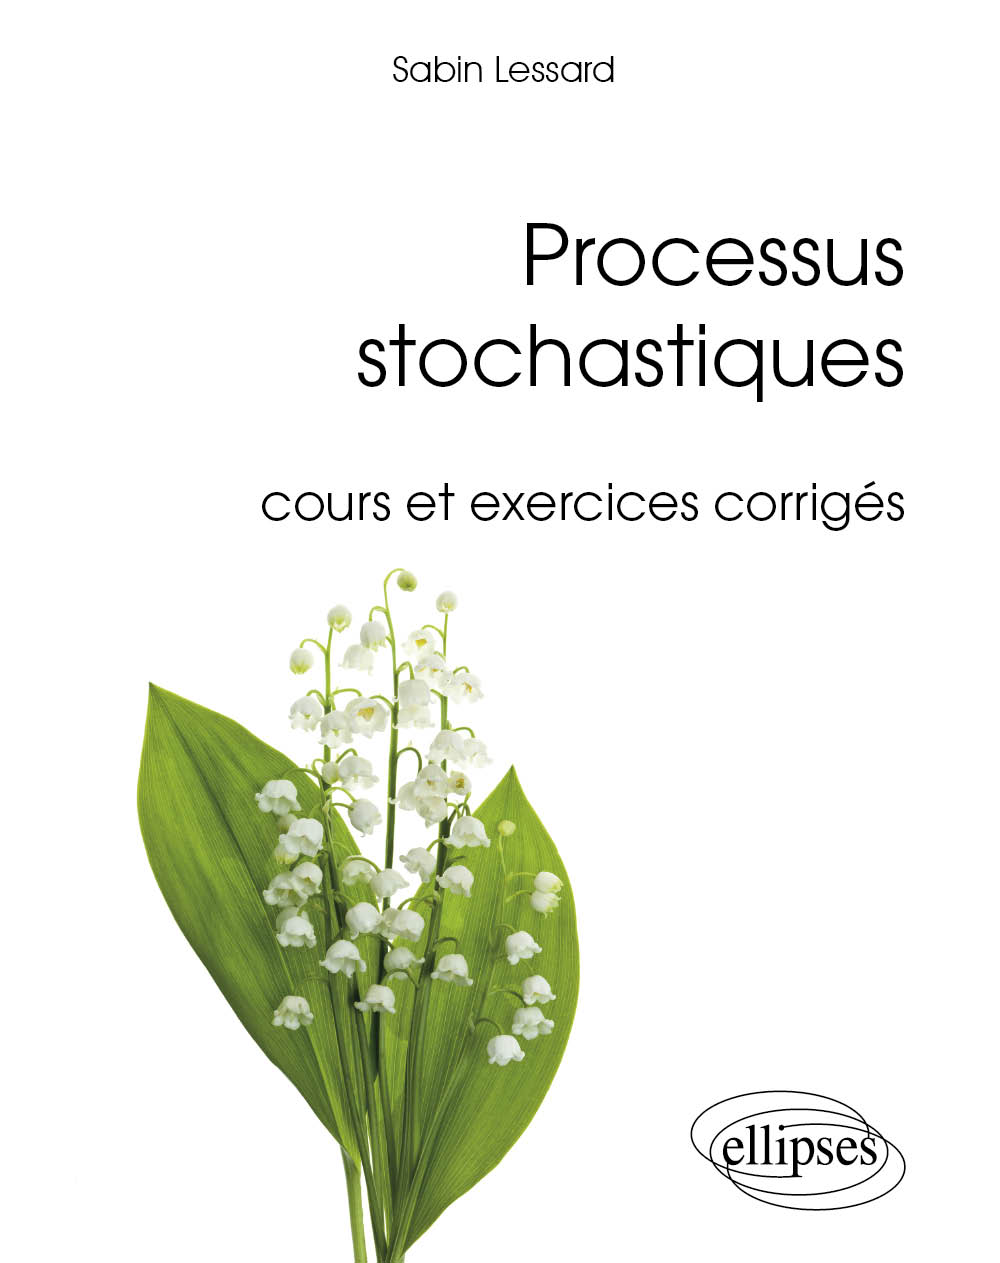 Processus stochastiques - cours et exercices corrig�s